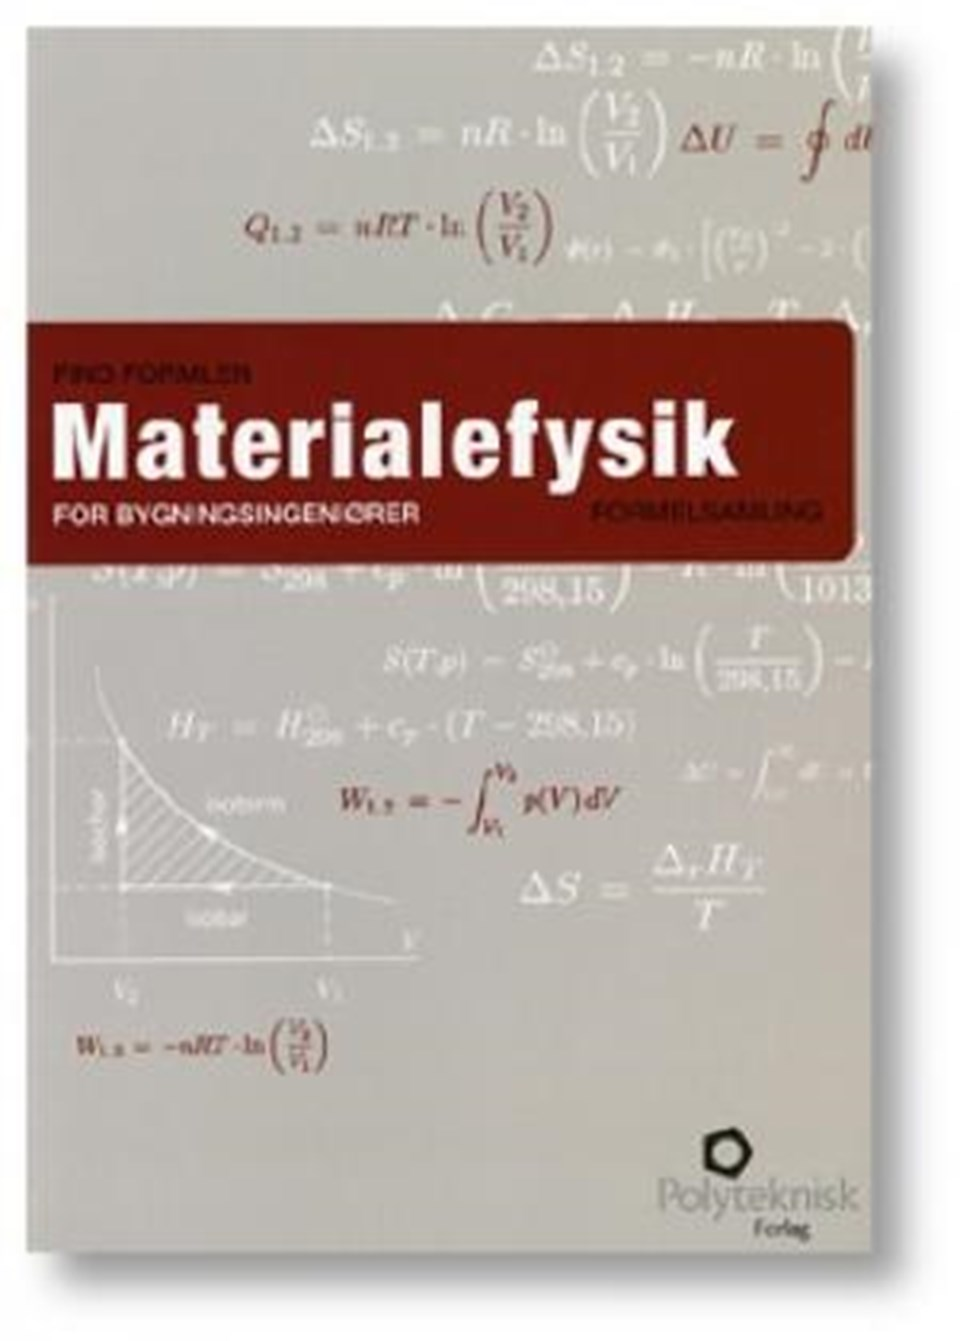 Find formlen - Materialefysik for bygningsing.